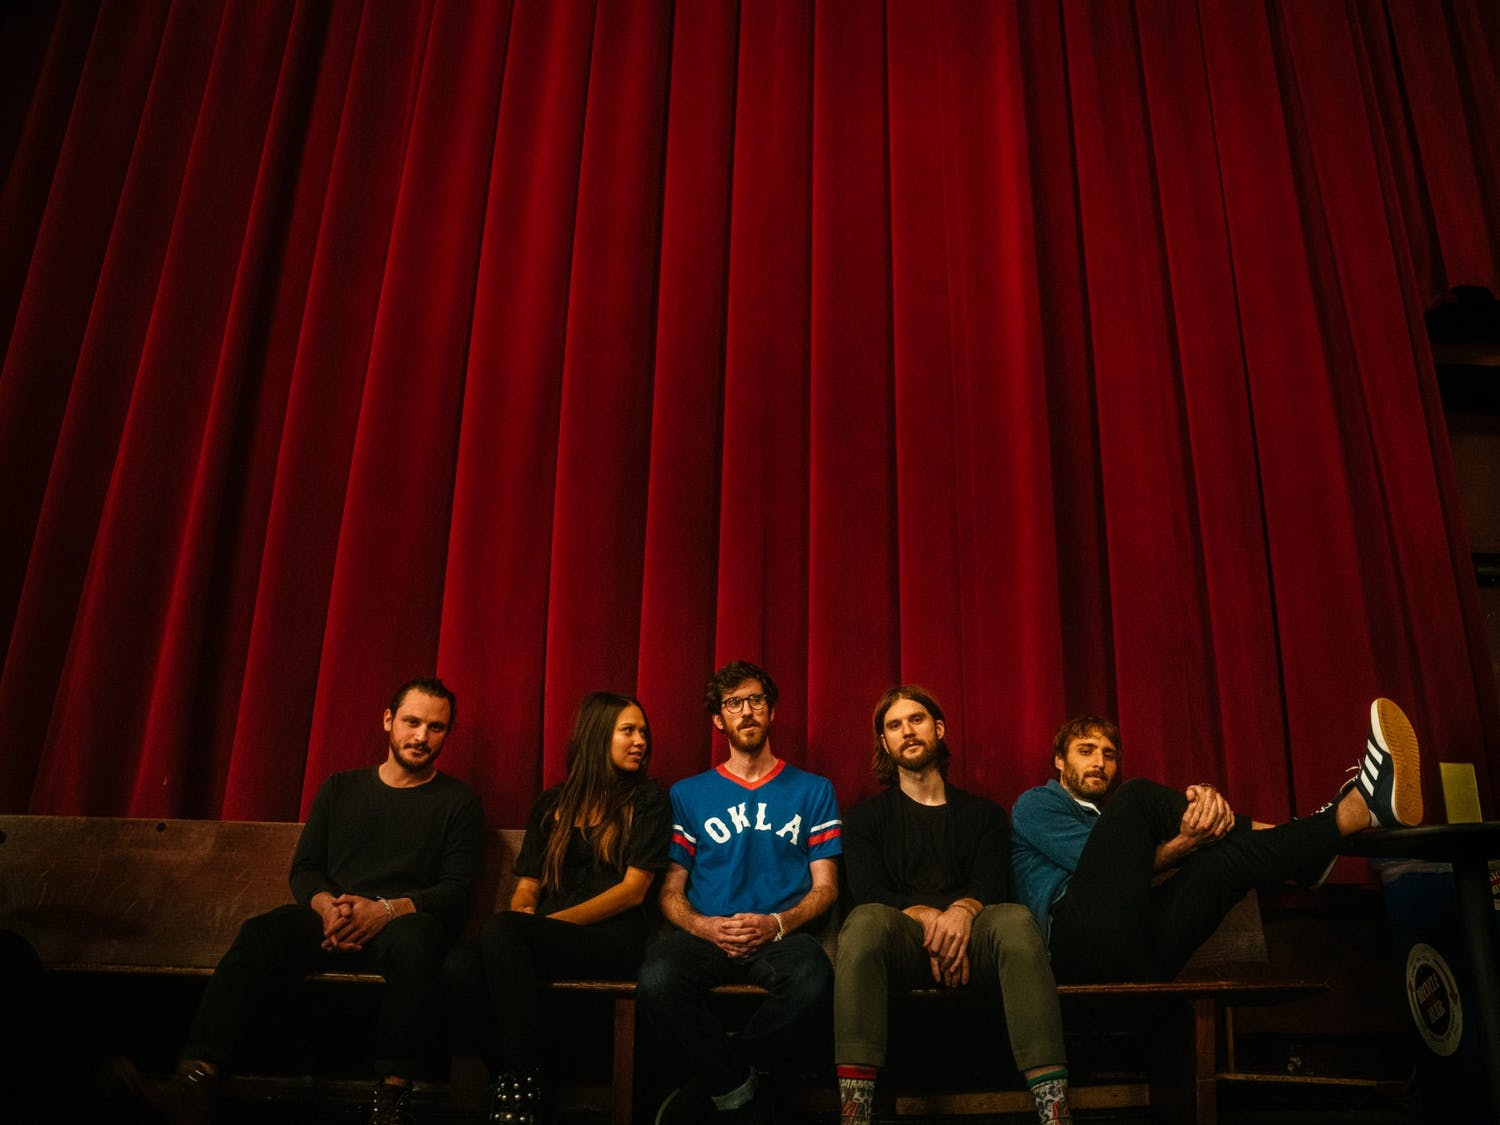 Members of Mt. Joy (from left to right) include Sam Cooper, Jackie Miclau, Michael Byrnes, Matt Quinn and Sotiris Eliopoulos. Mt. Joy is coming to Columbia on May 15 as part of its recently announced tour.